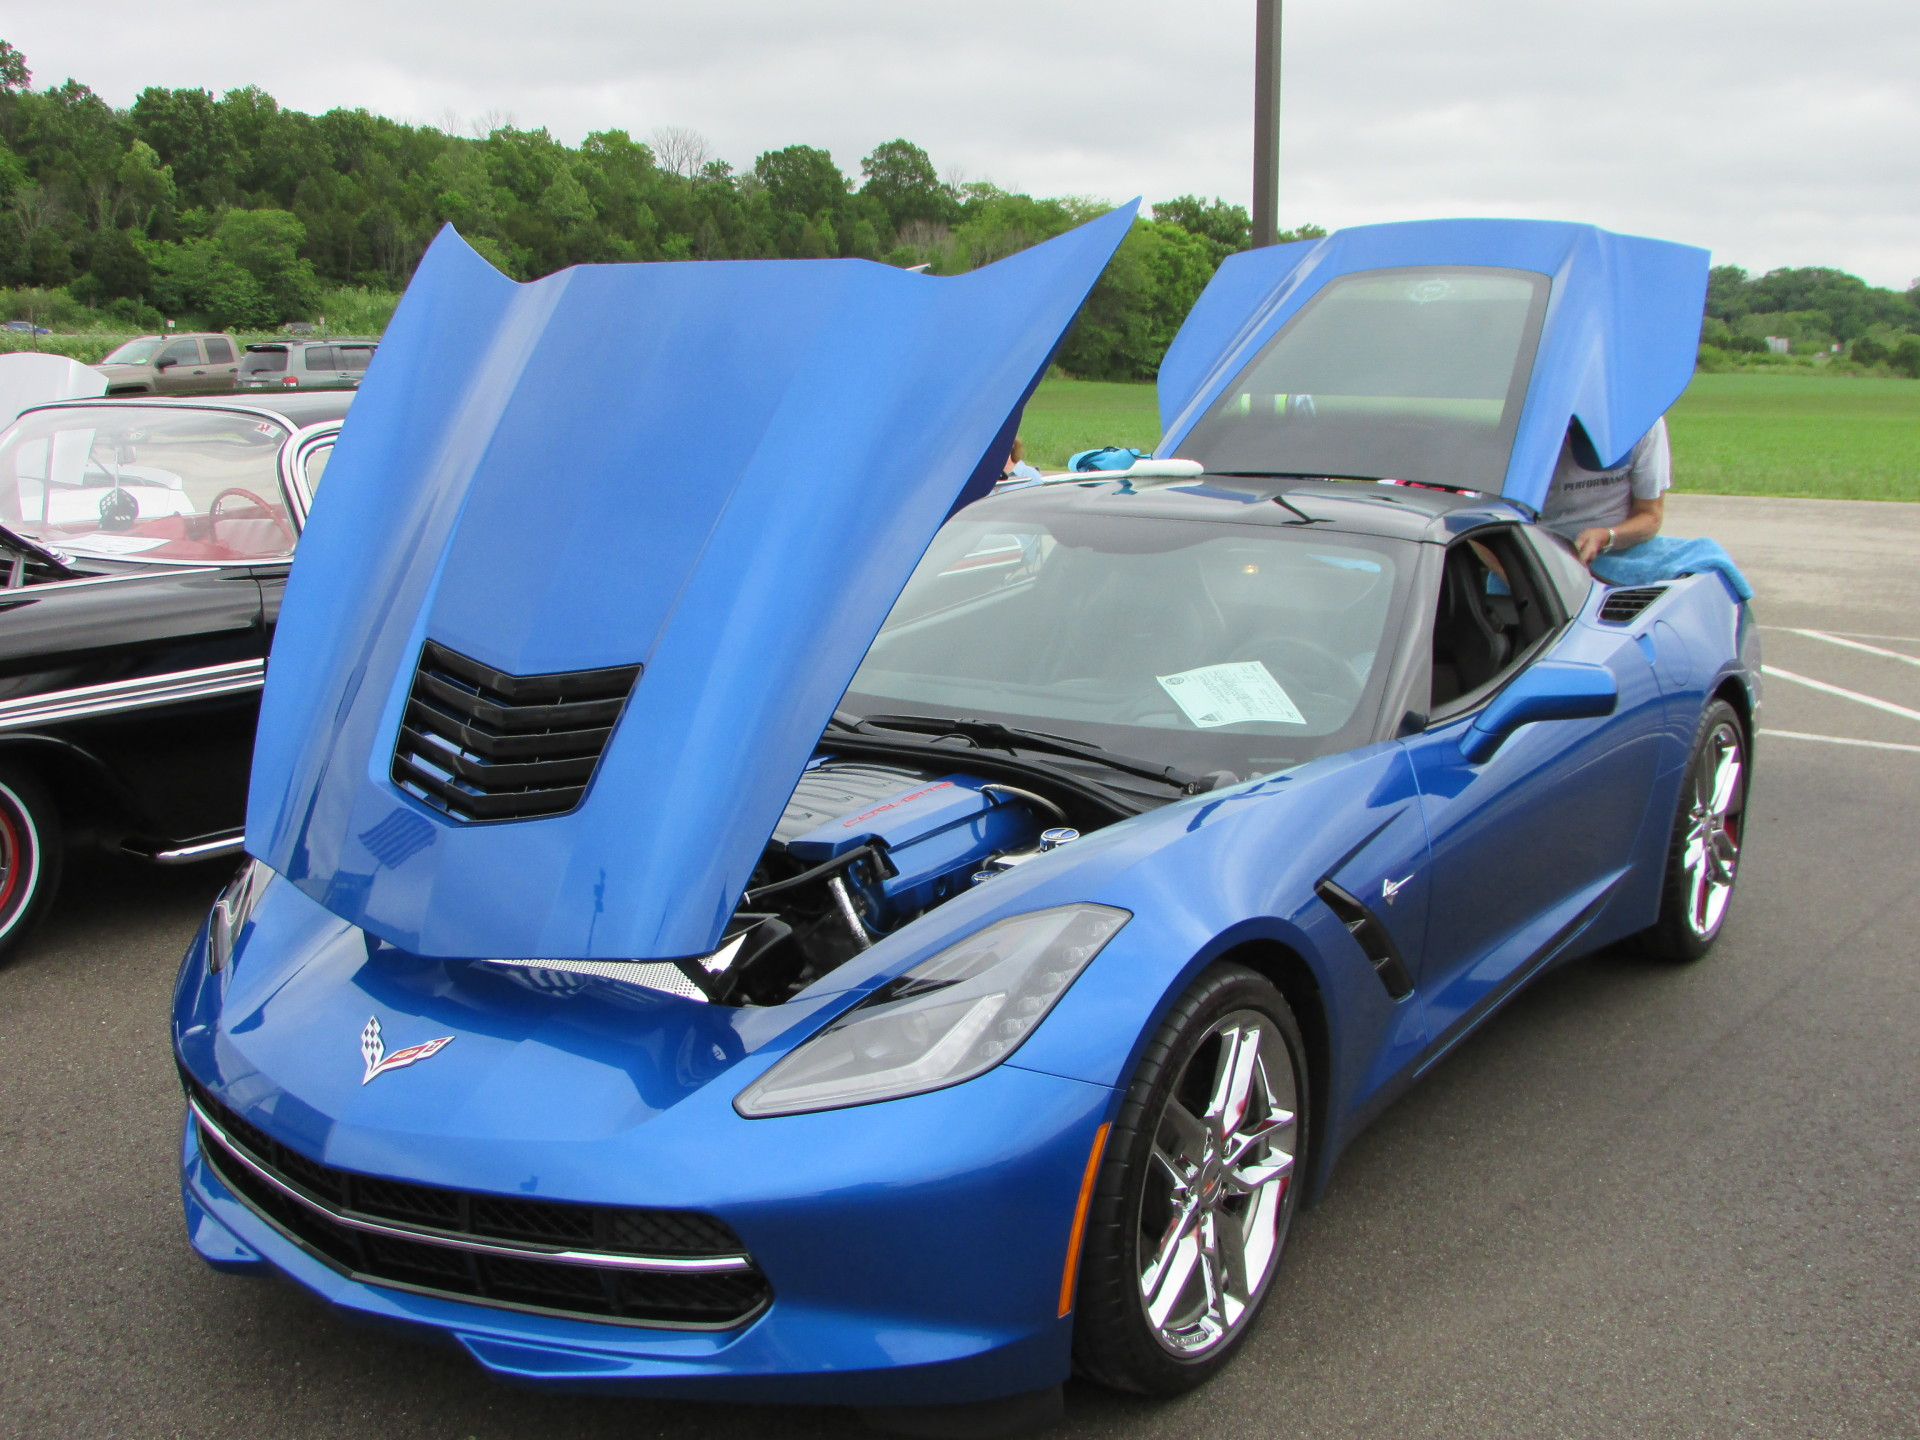 2014 Chevy Corvette